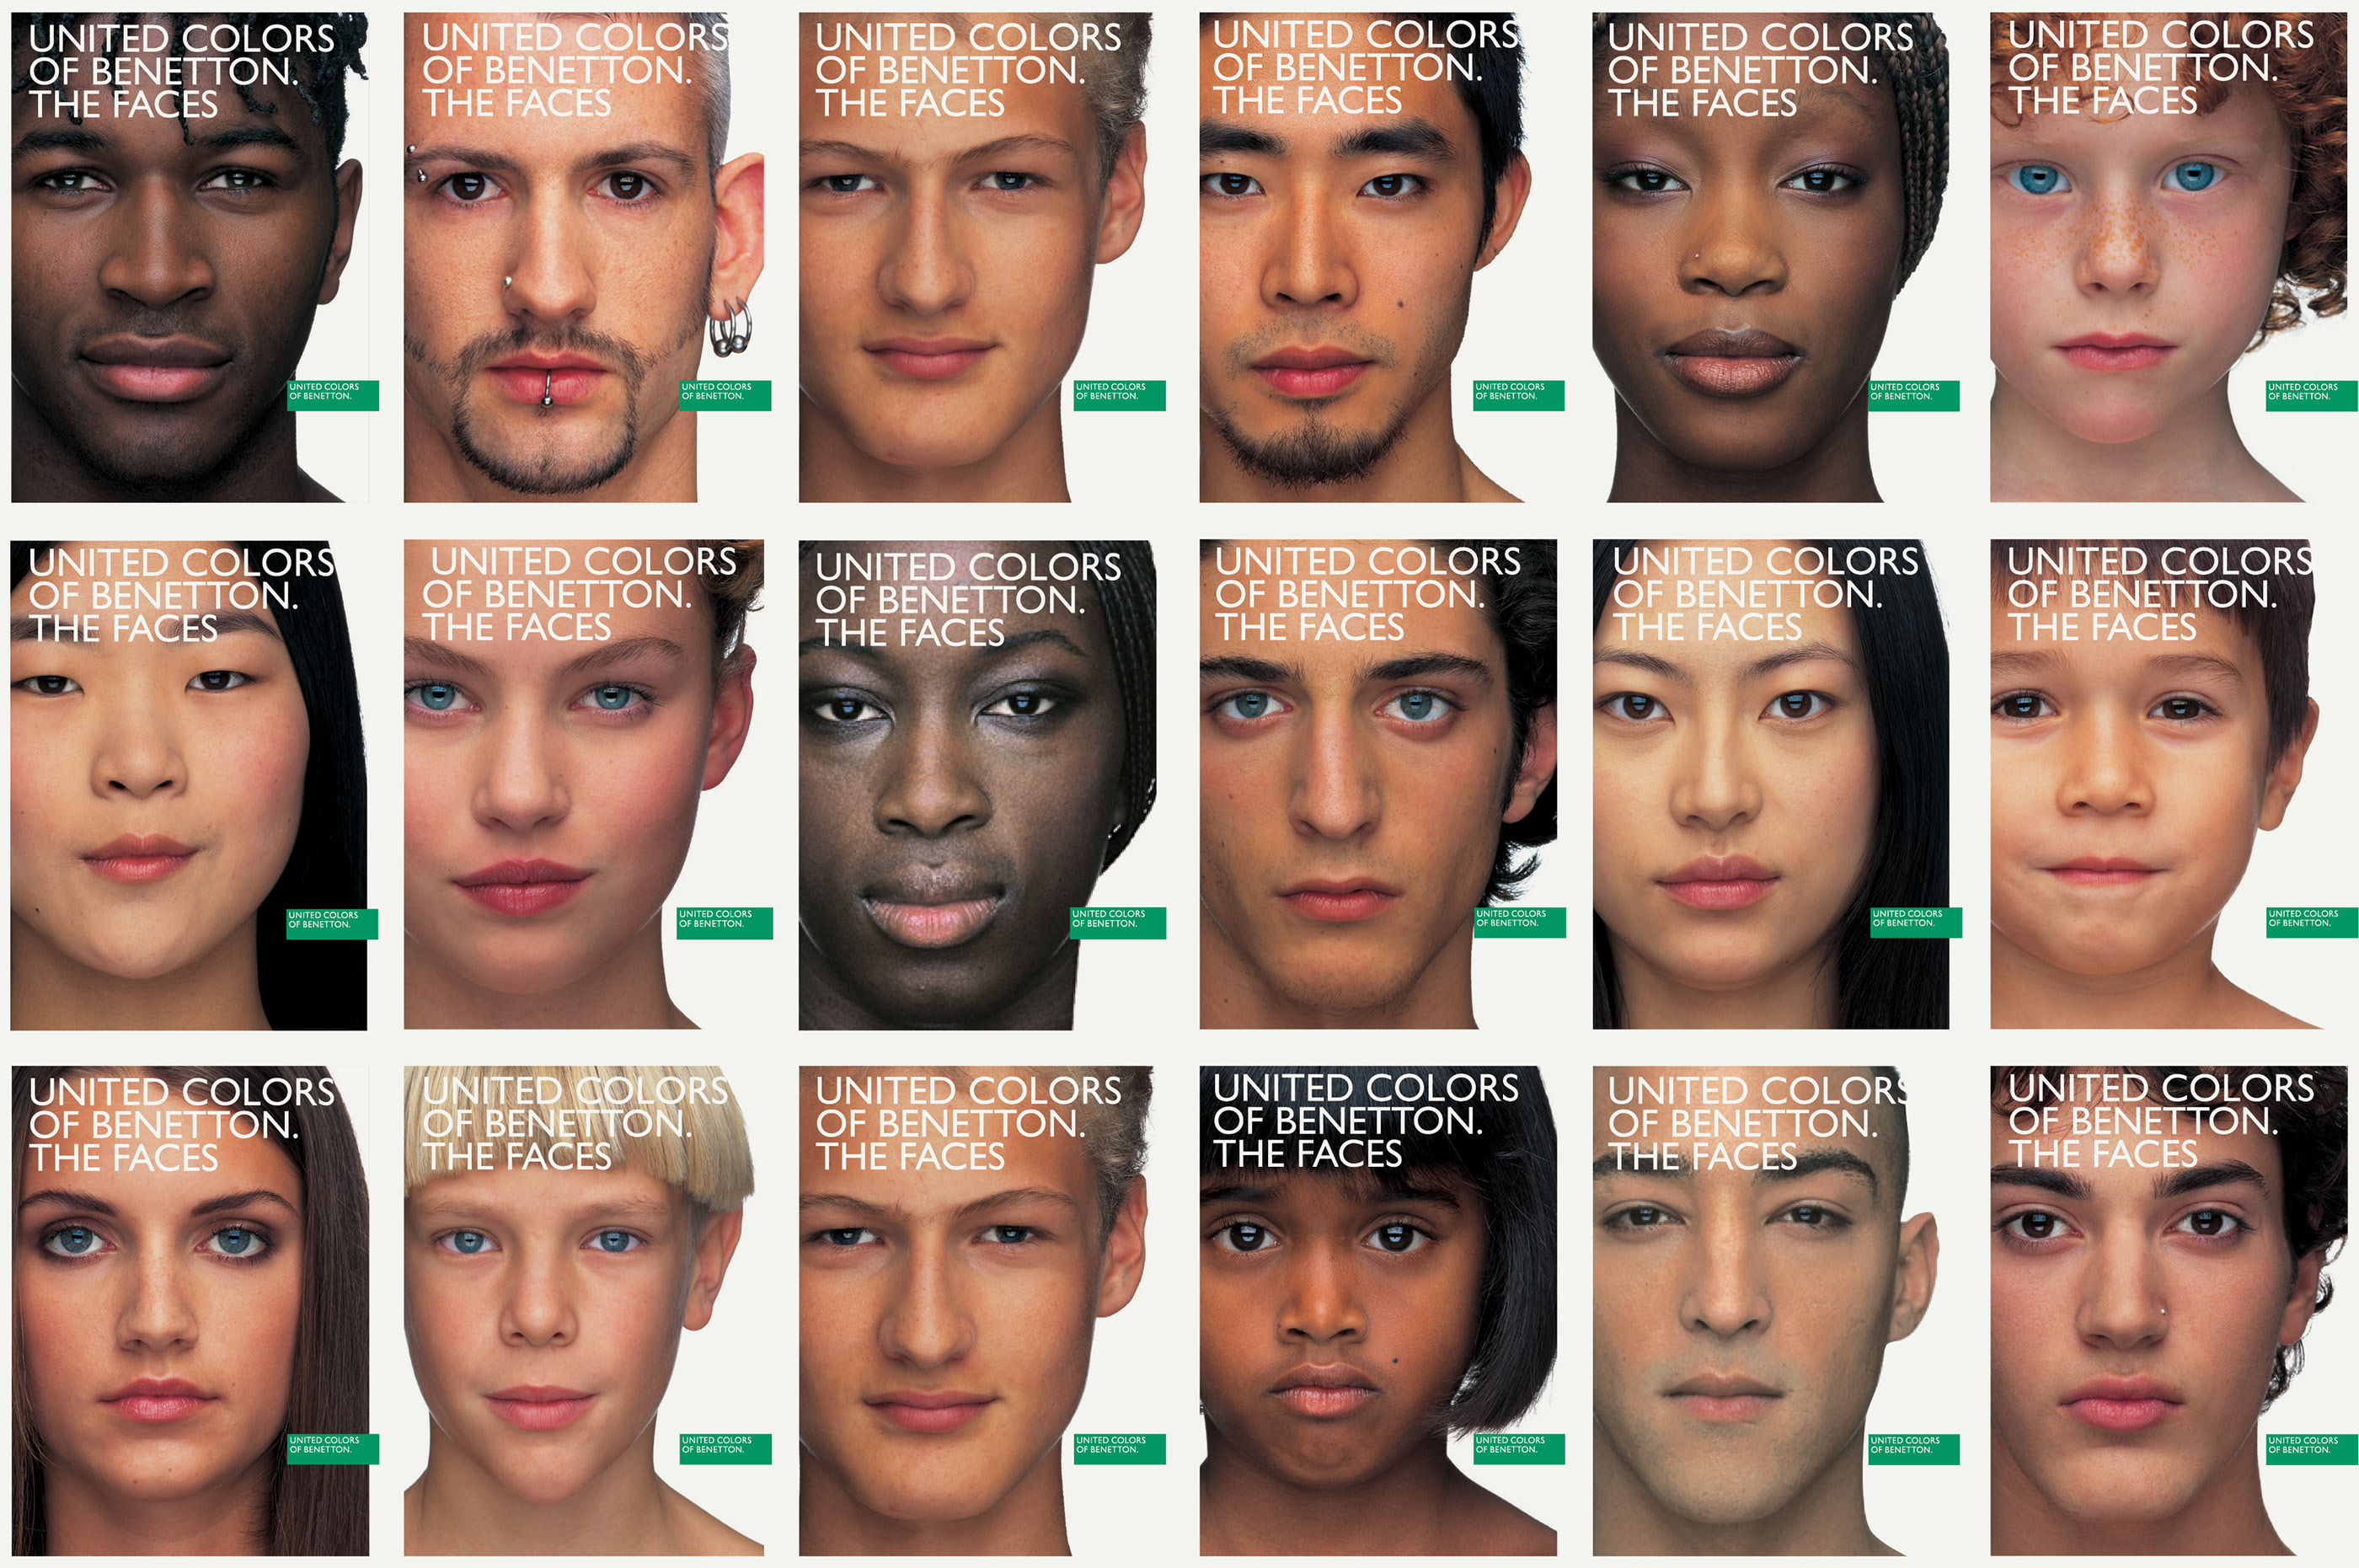 bc90e687ca3 The Faces - United Colors Of Benetton on Behance